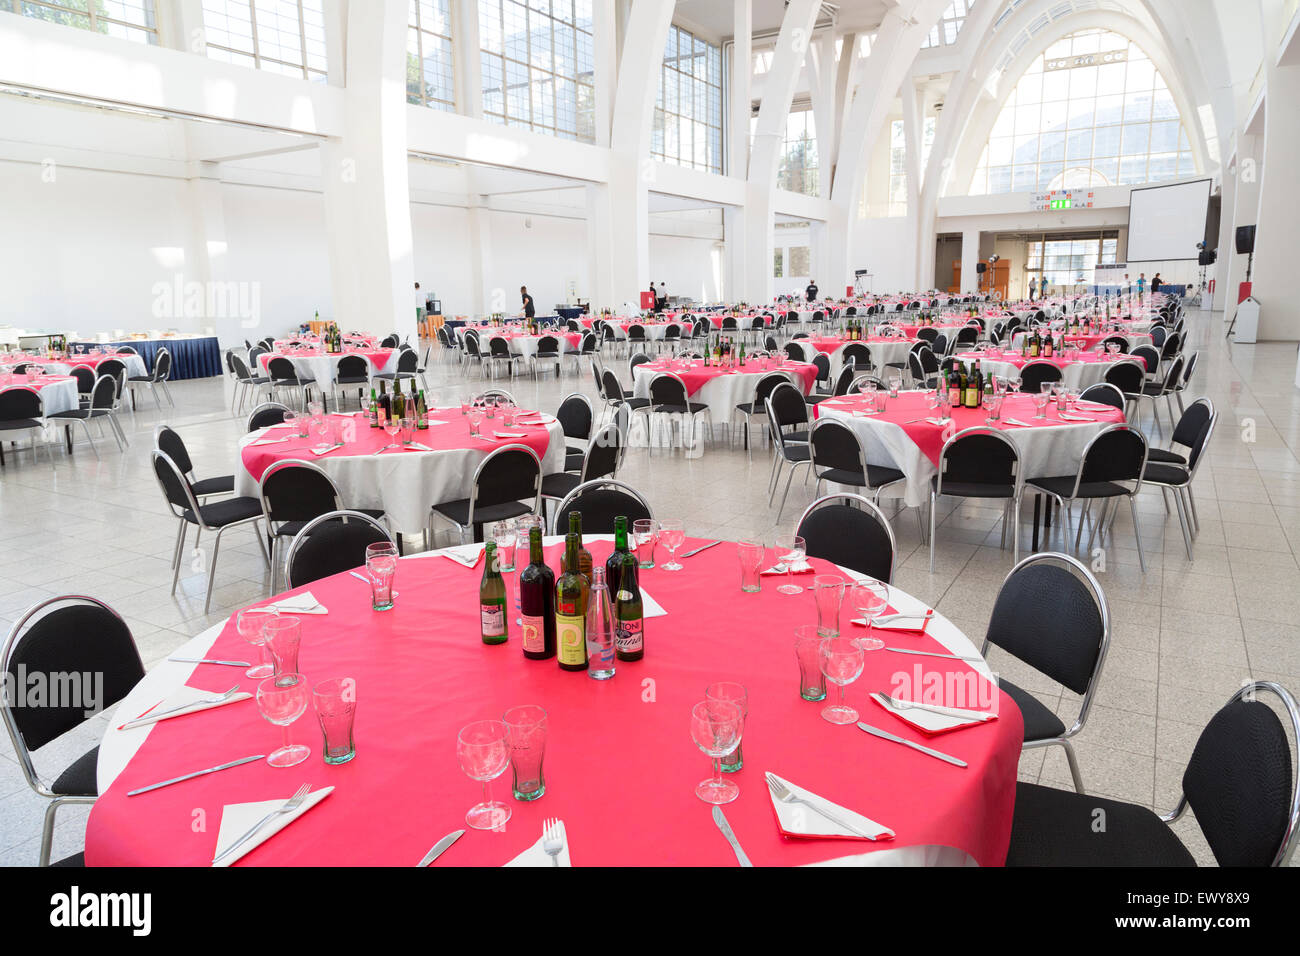 Tables laid ready for conference dinner with wine on each table, Brno, Czech Republic - Stock Image